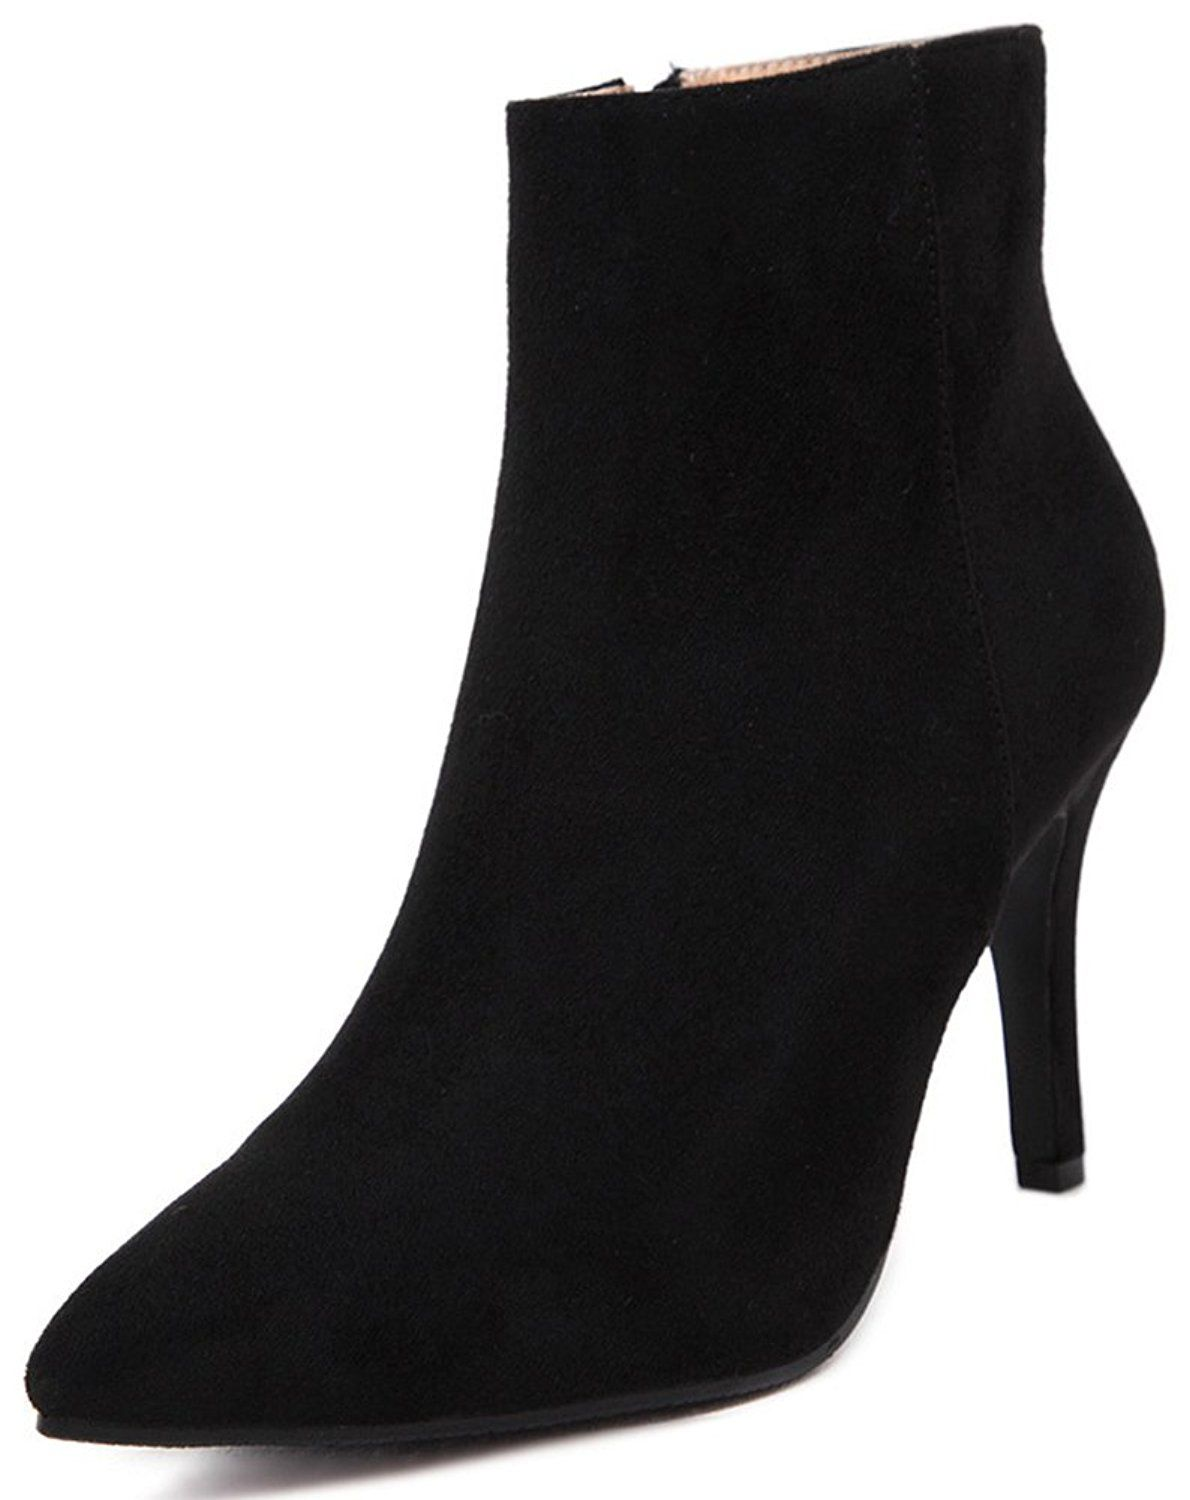 Women's Sexy Pointed Toe Side Zipper Booties Stiletto High Heel Frosted Ankle Boots